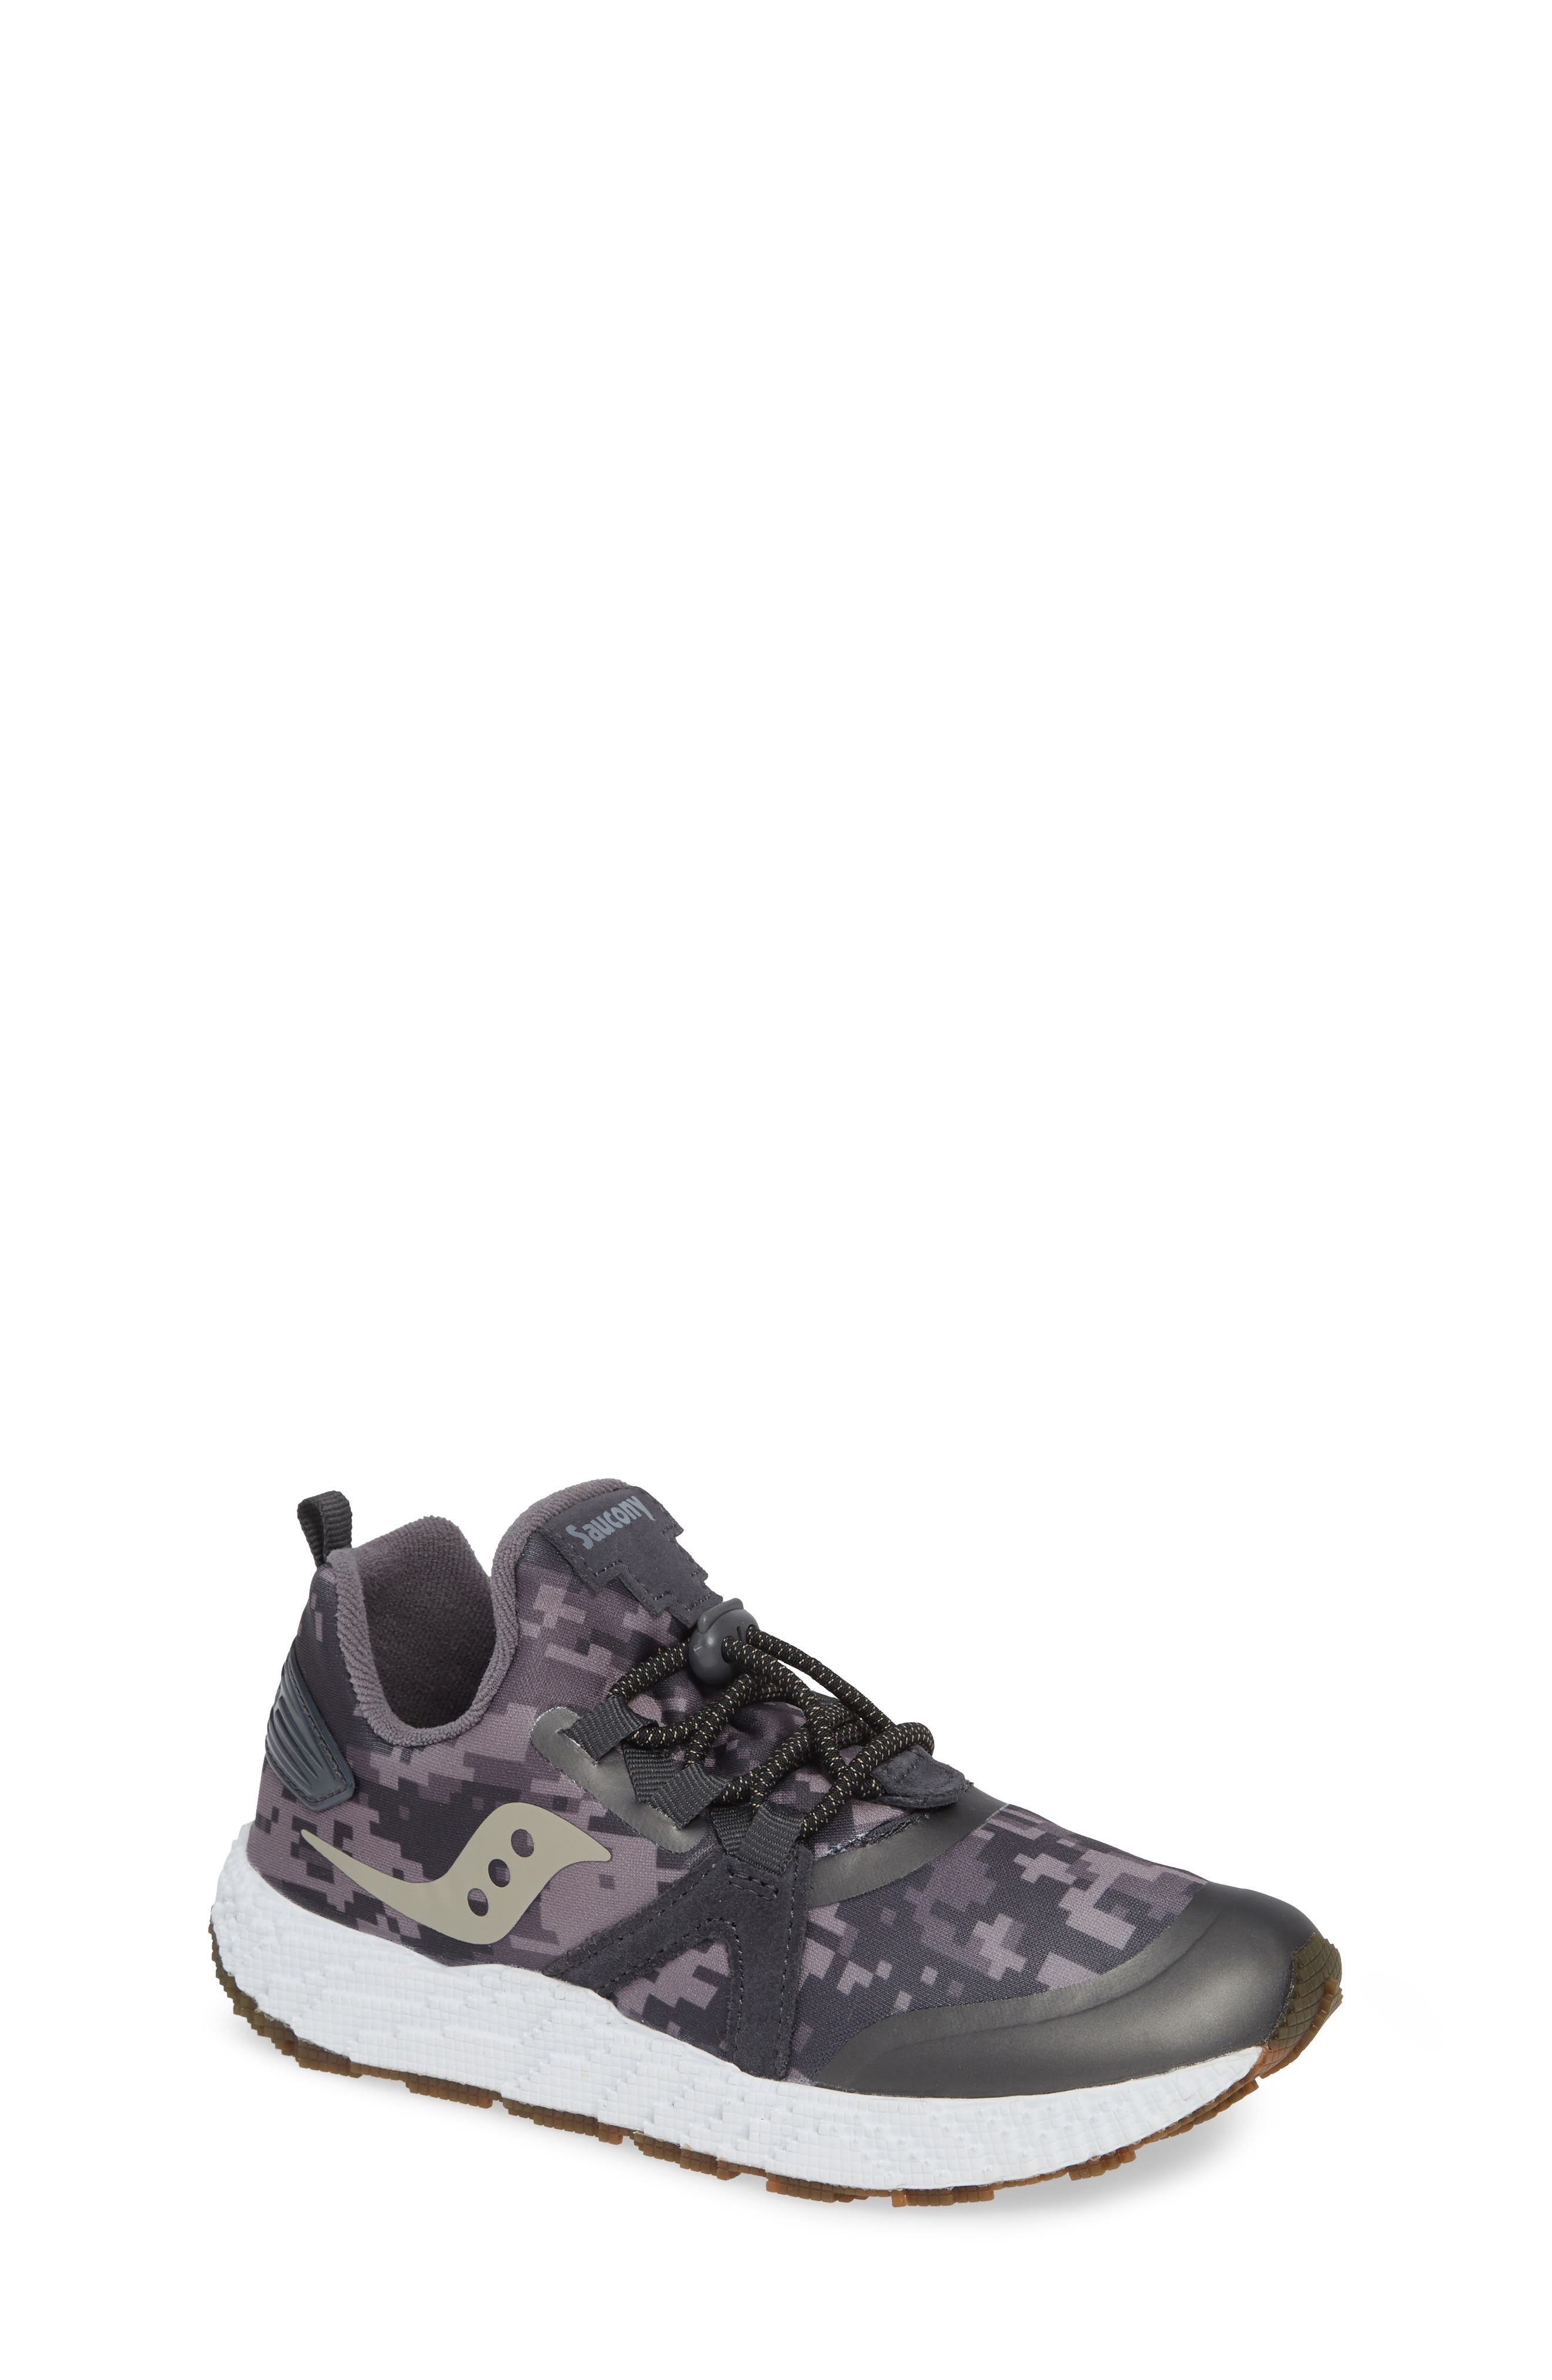 SAUCONY, Voxel 9000 Sneaker, Main thumbnail 1, color, GREY LEATHER/ MESH